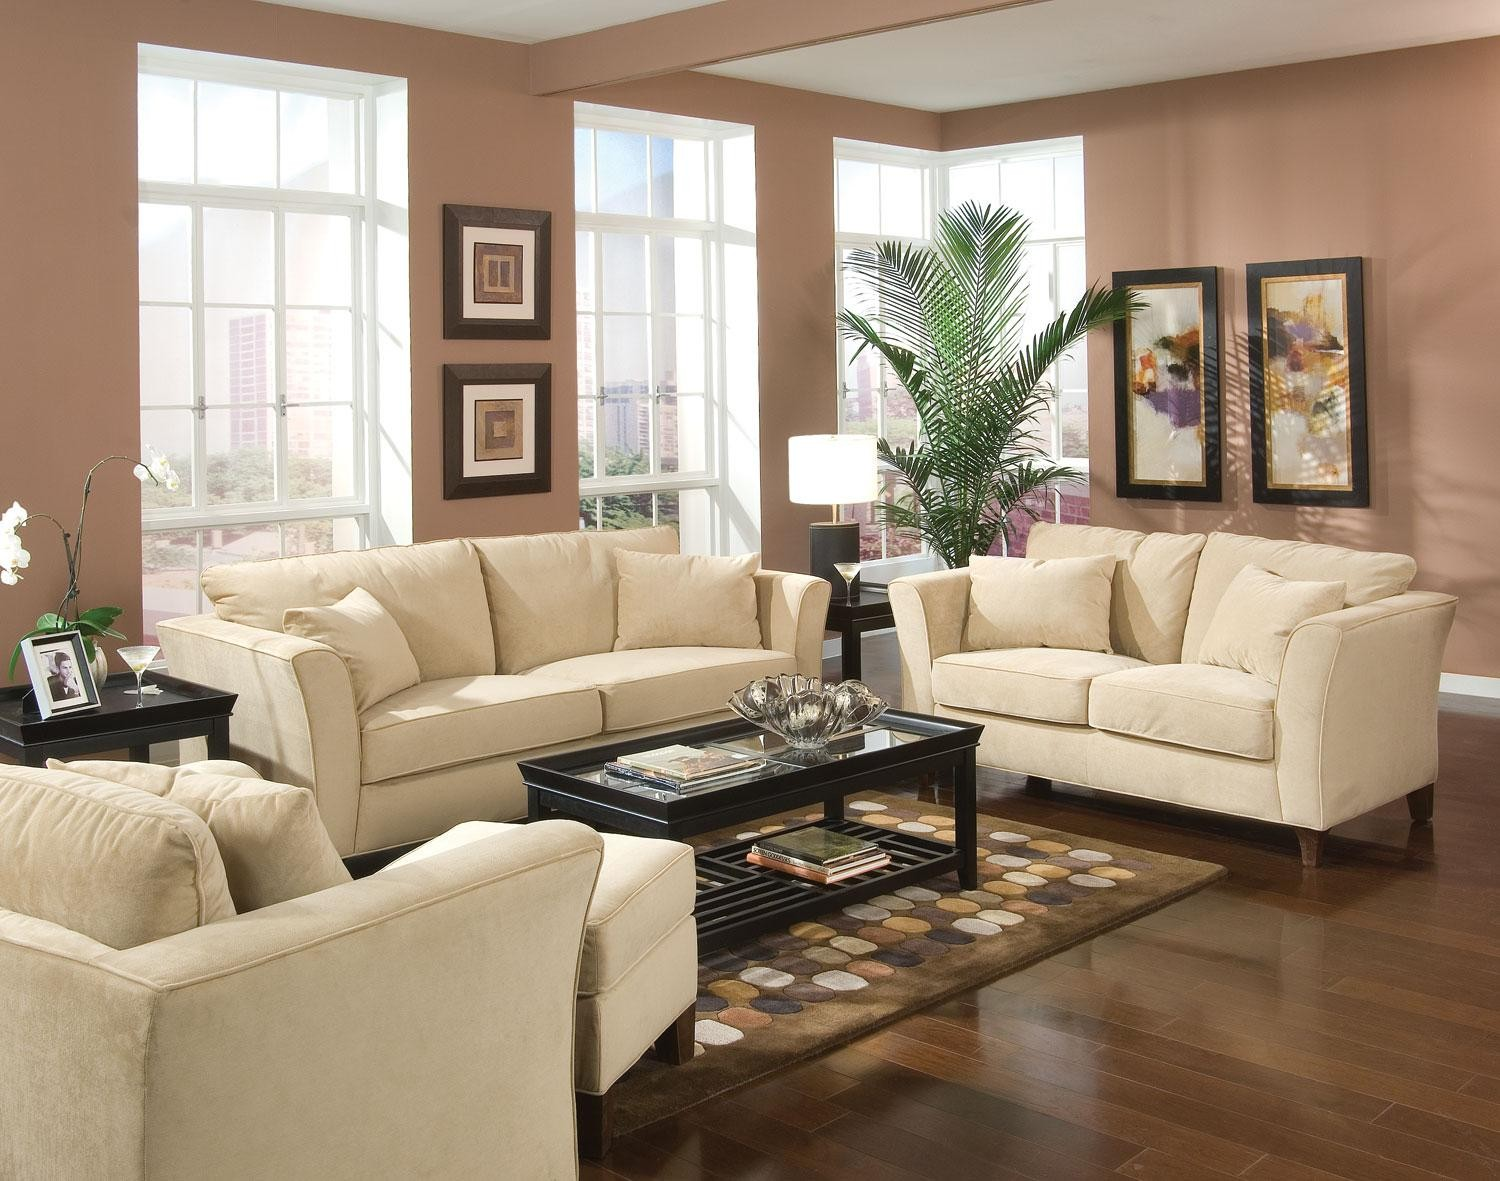 Very Living Room Sets Park Place Cream Living Room Set 500231 From Coaster 500231